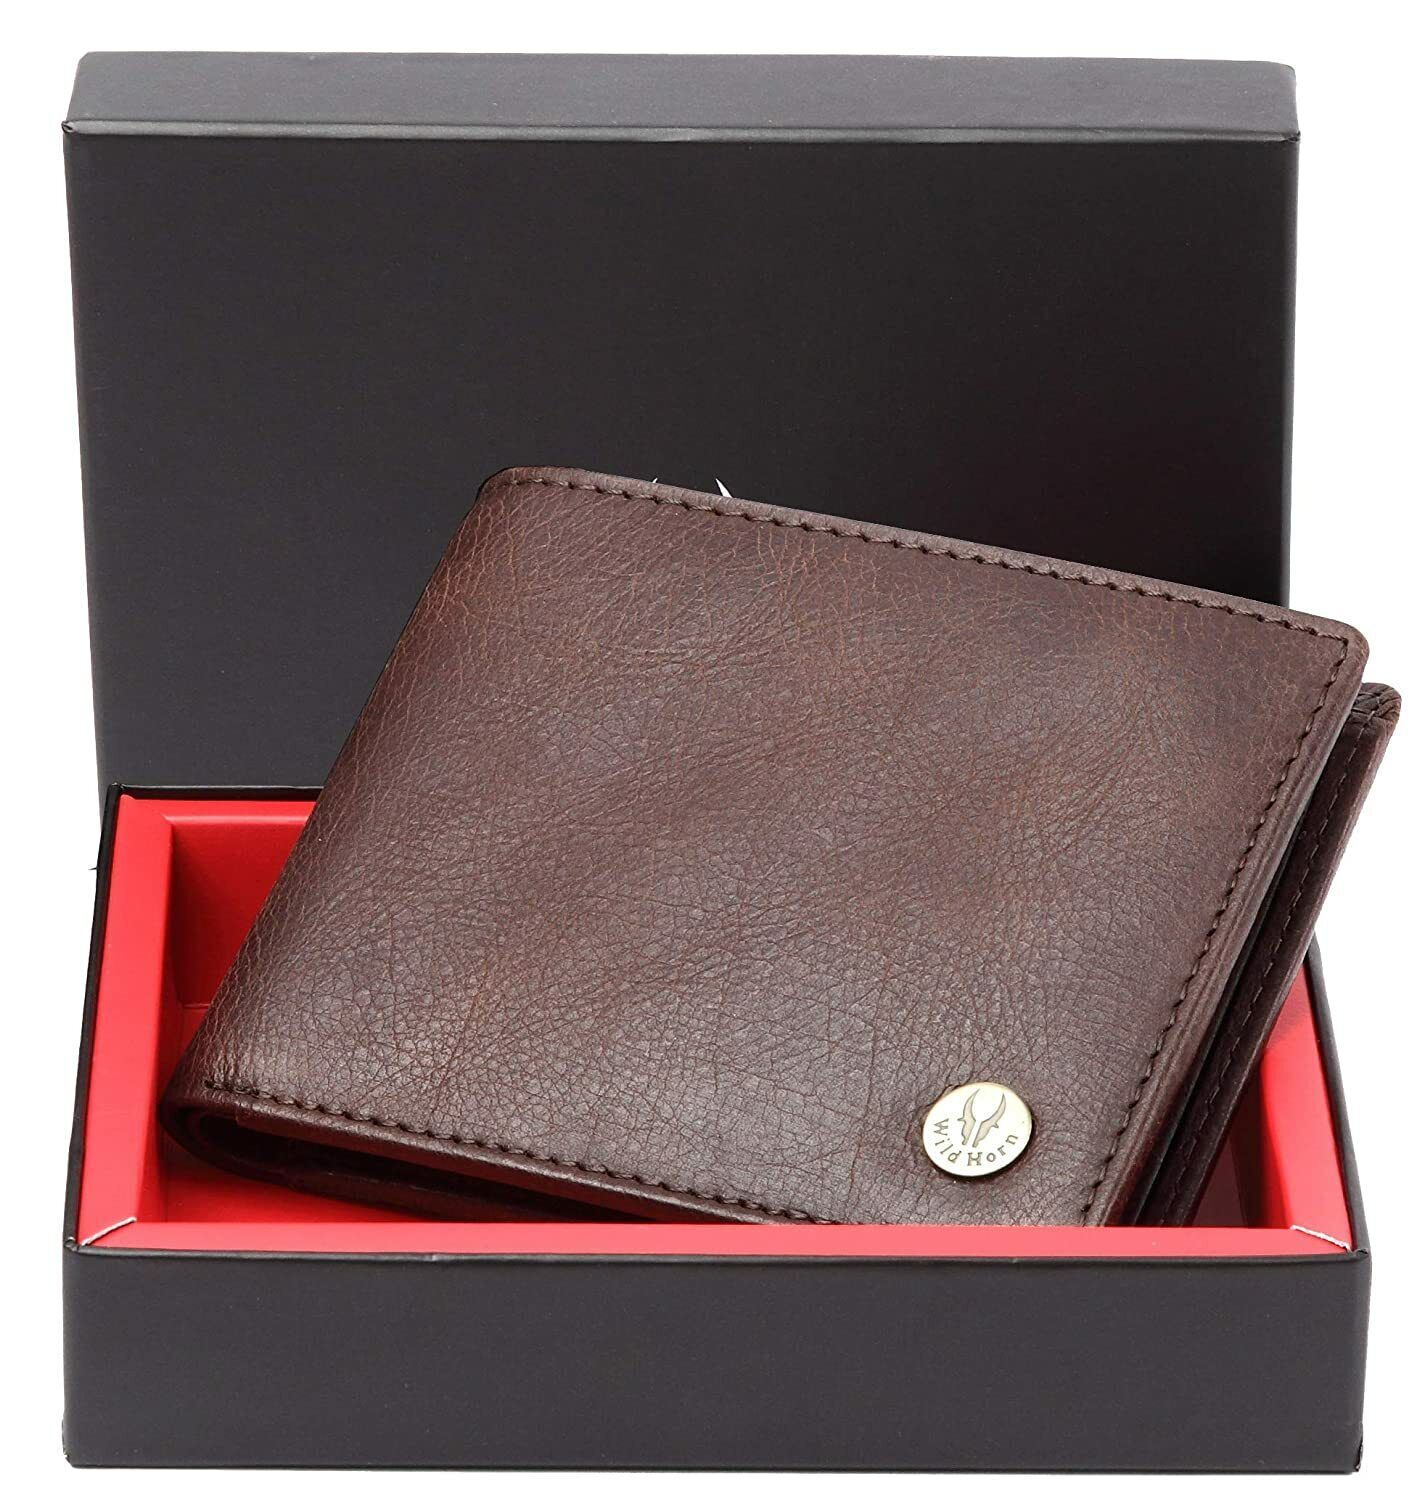 Best RFID Protected Men's Genuine Leather Wallet for men's Brown fast shipping